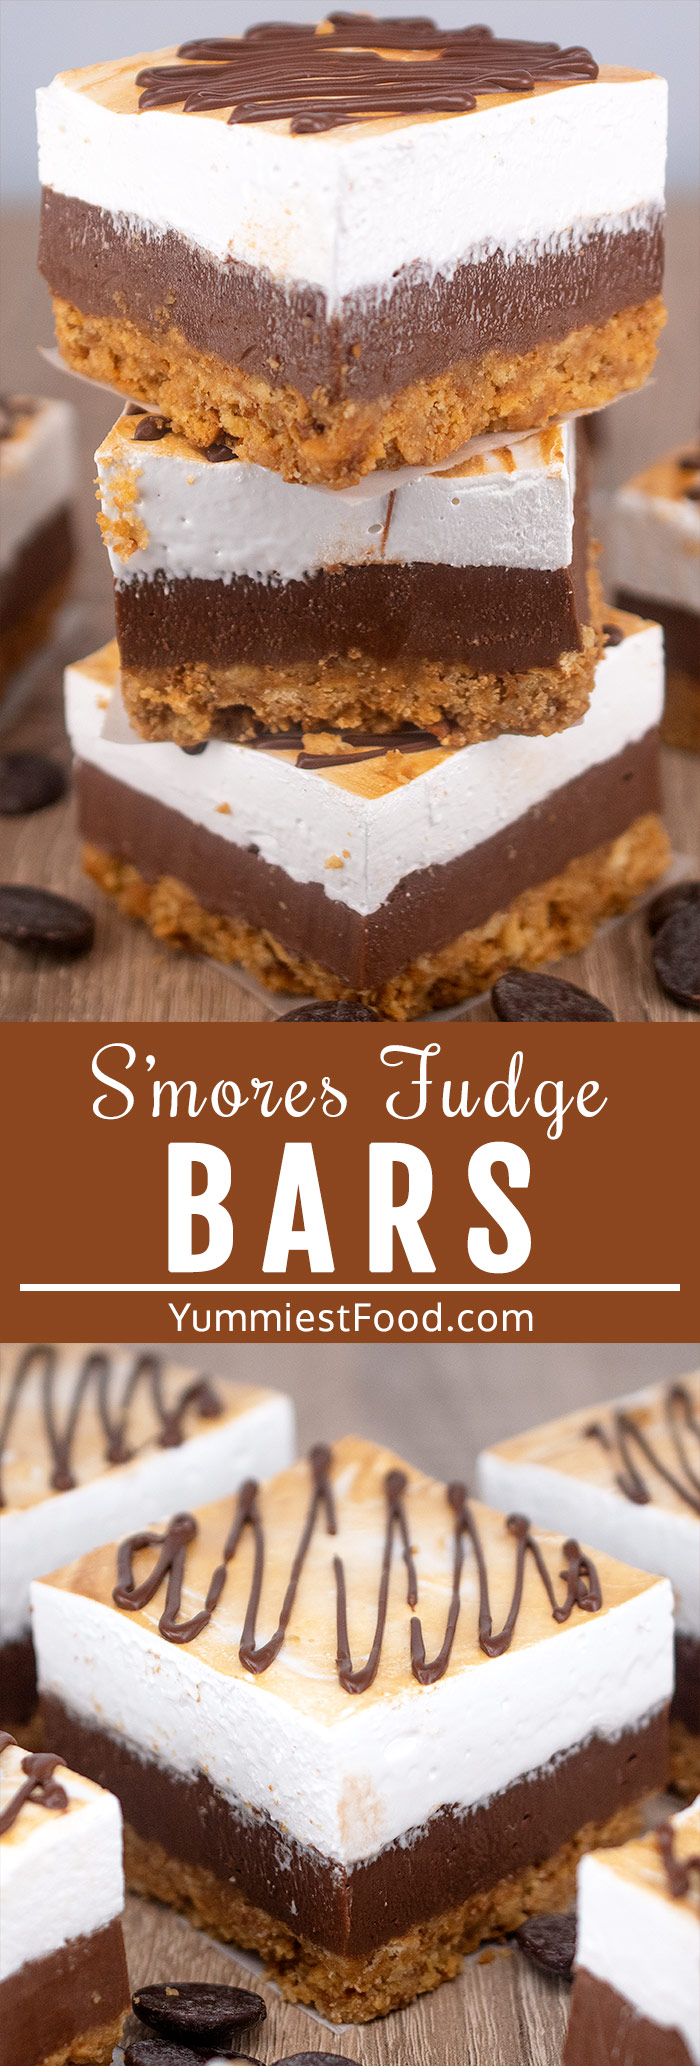 These S'mores Fudge Bars with Homemade Marshmallow Topping are a great sweet treat, for the family and for when a crowd is coming round.